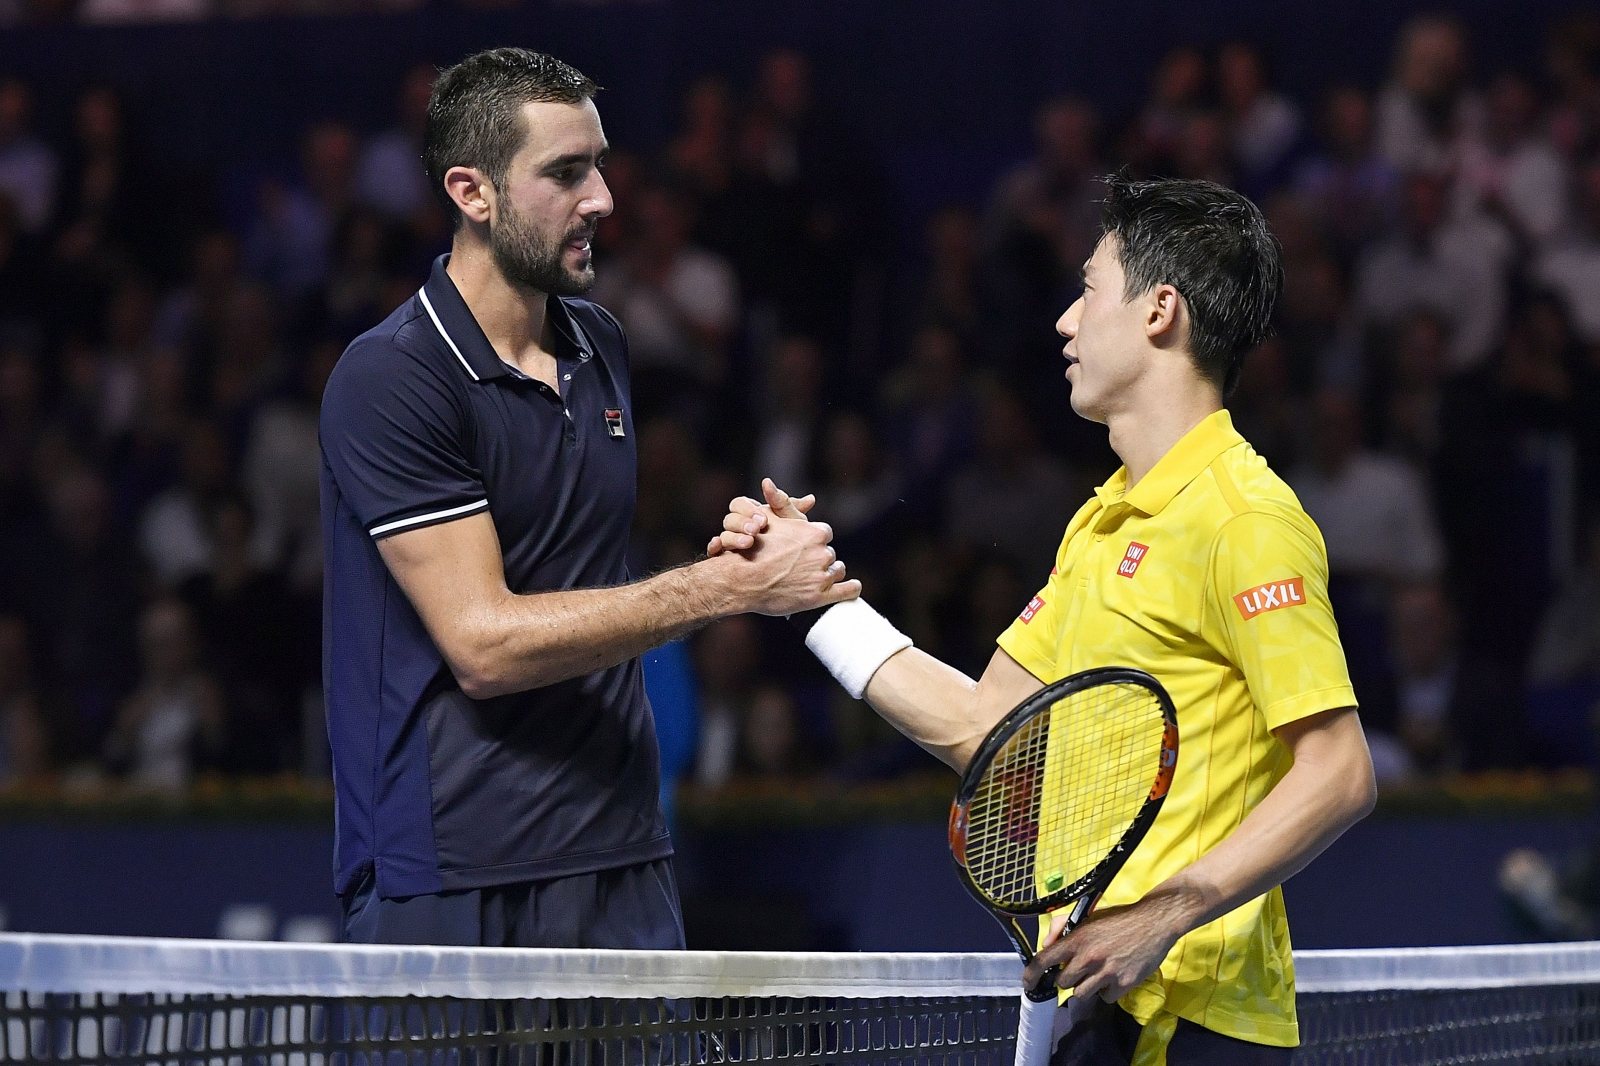 Marin Cilic and Kei Nishikori